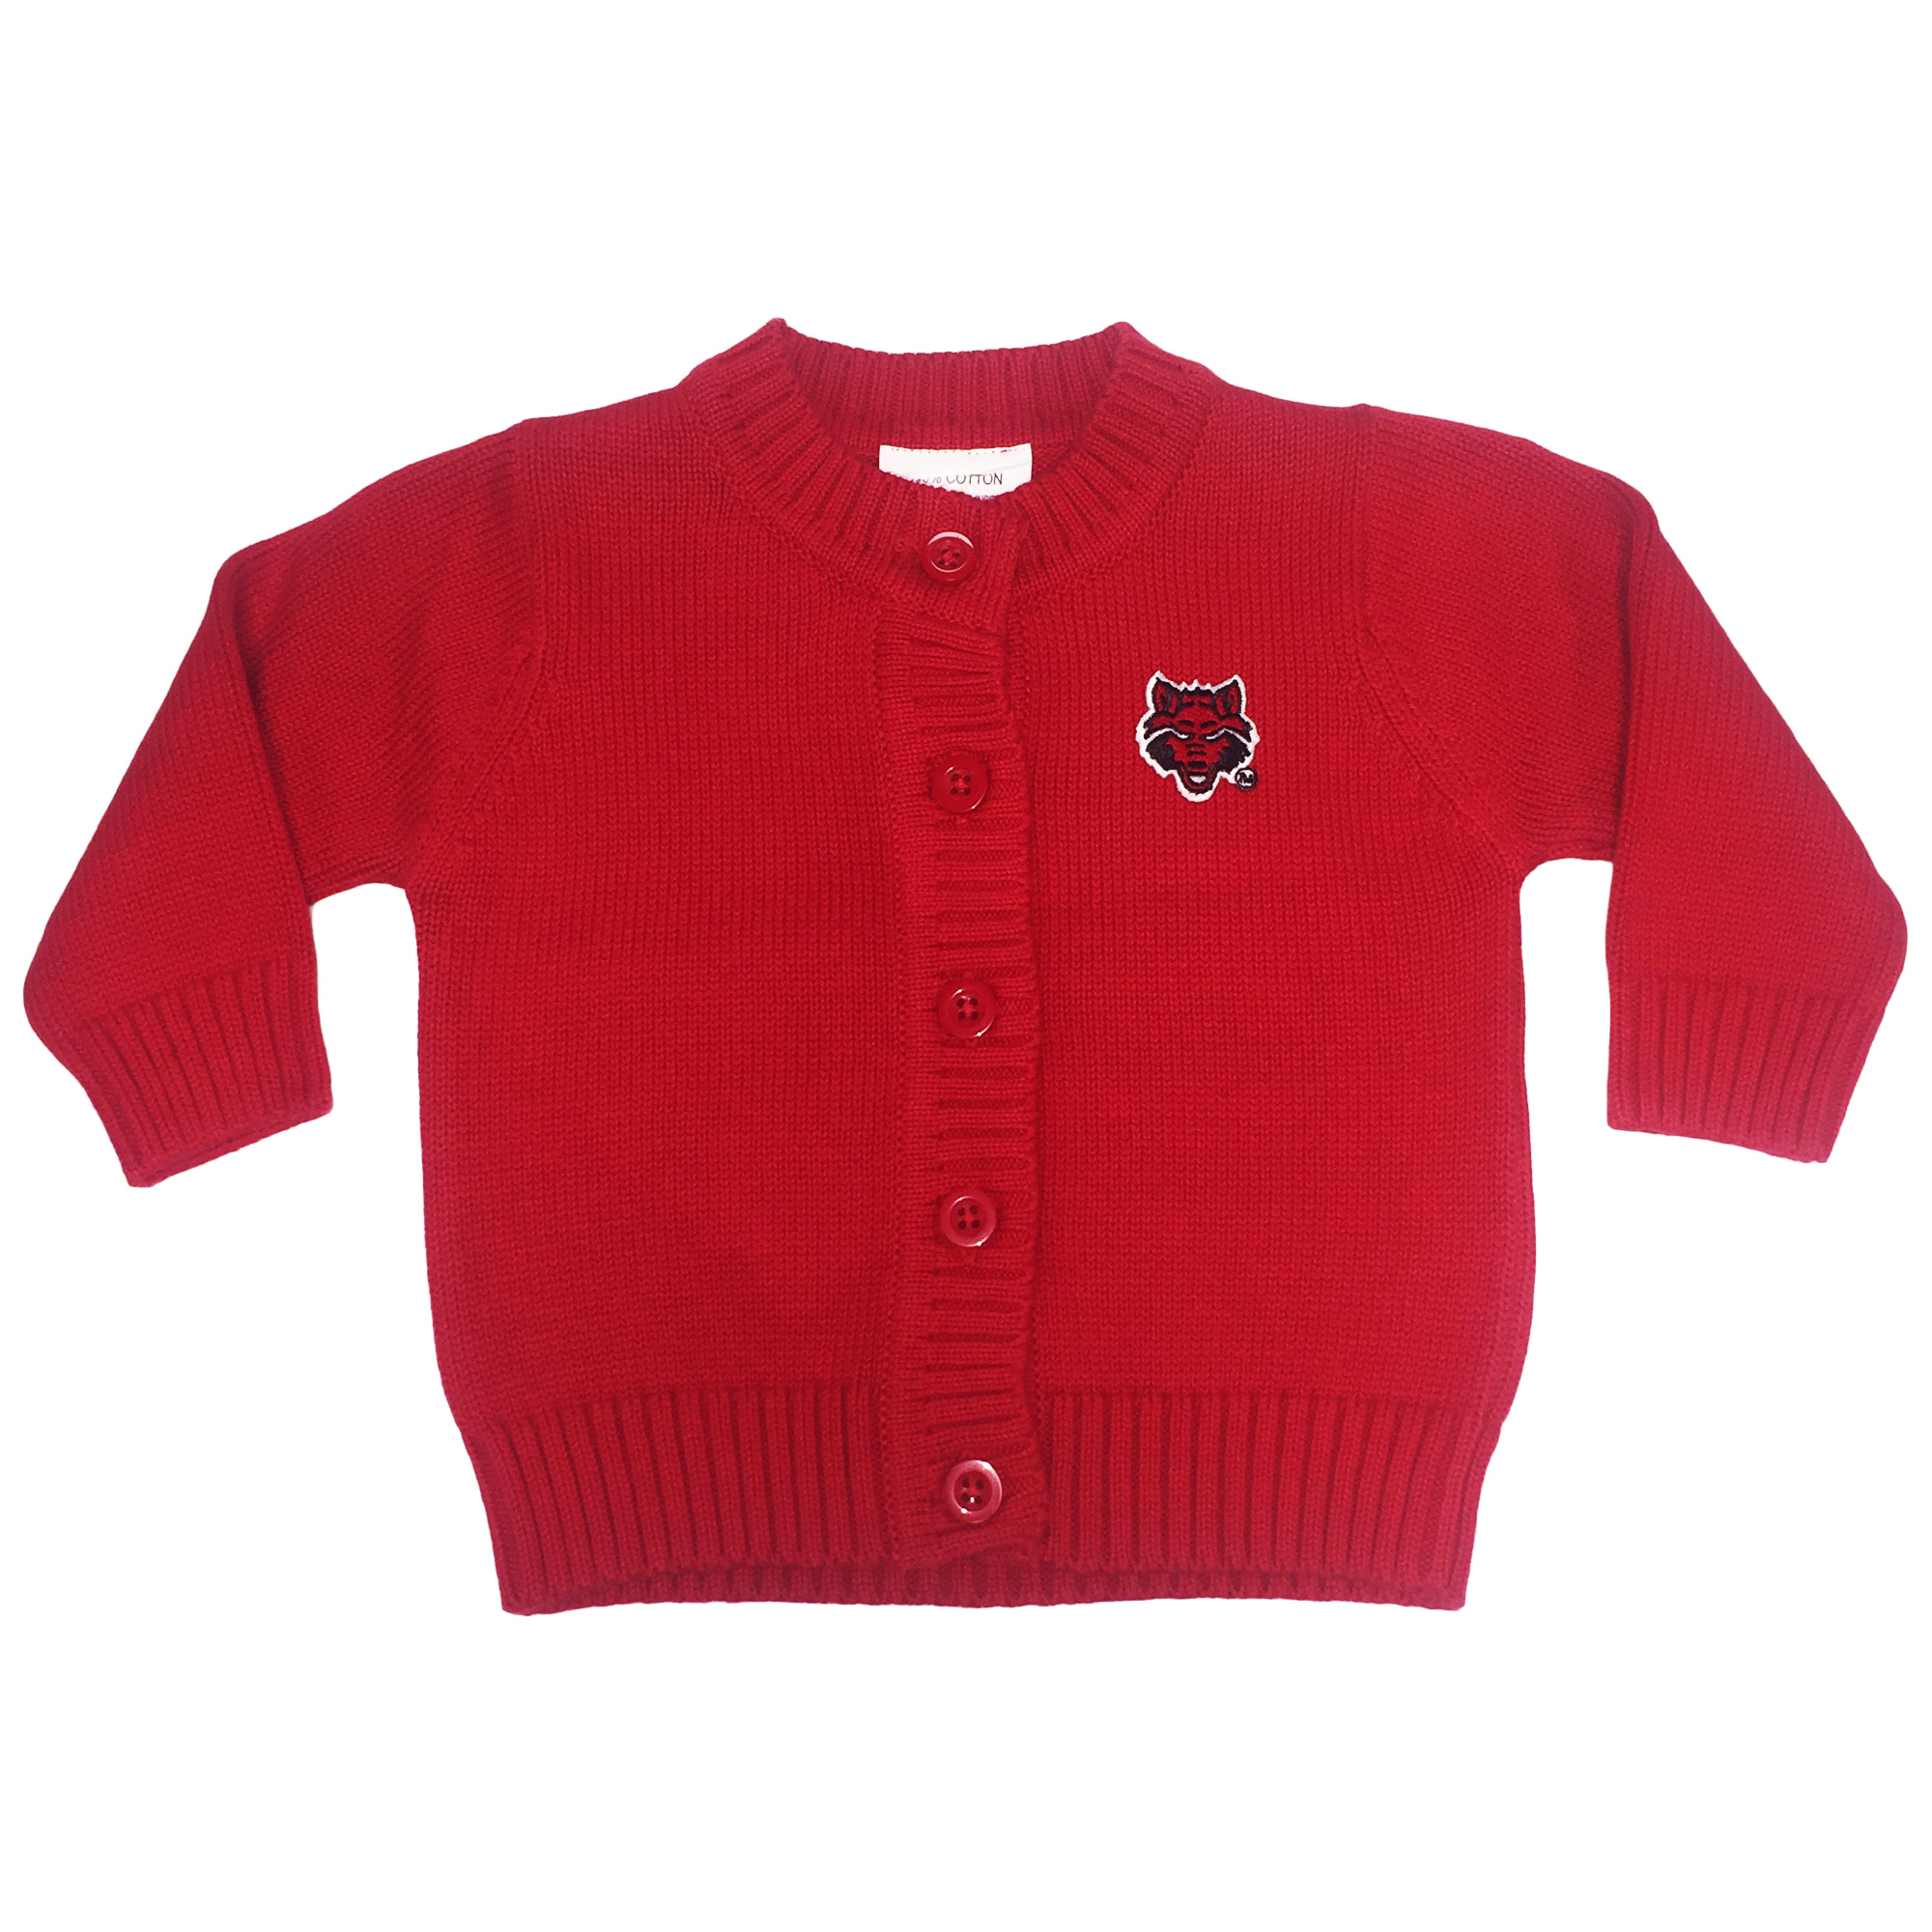 Red Wolves Cardigan Sweater